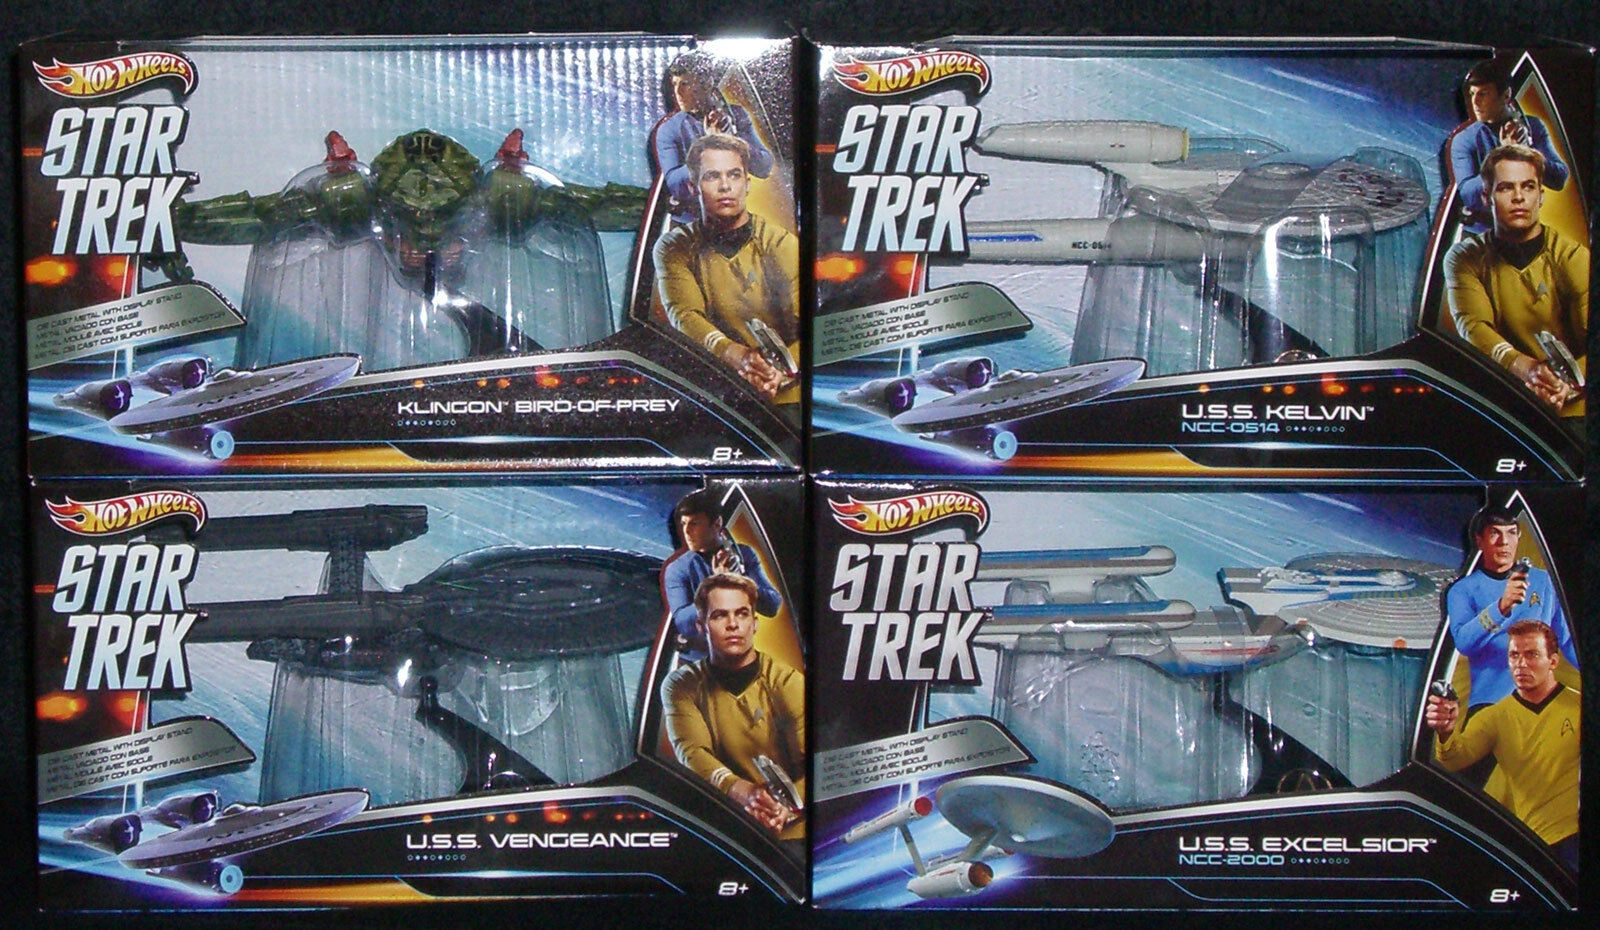 1 50 Hot Wheels - Star Trek Vehicles - Set of 4